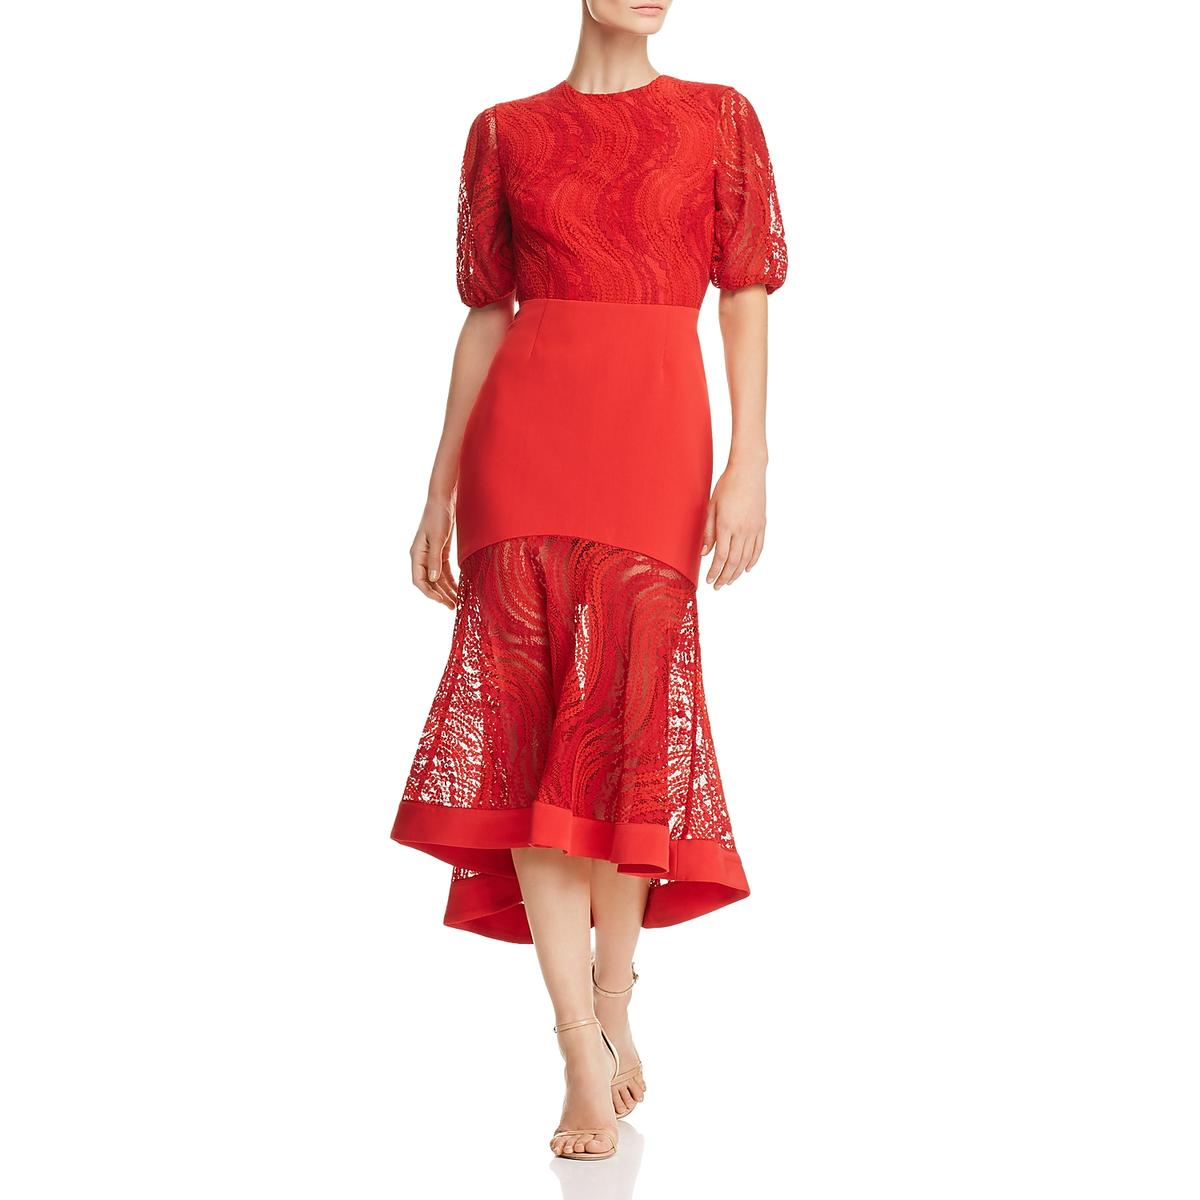 Details About Keepsake Womens Red Lace Puff Sleeve Formal Evening Dress Gown Xs Bhfo 8288